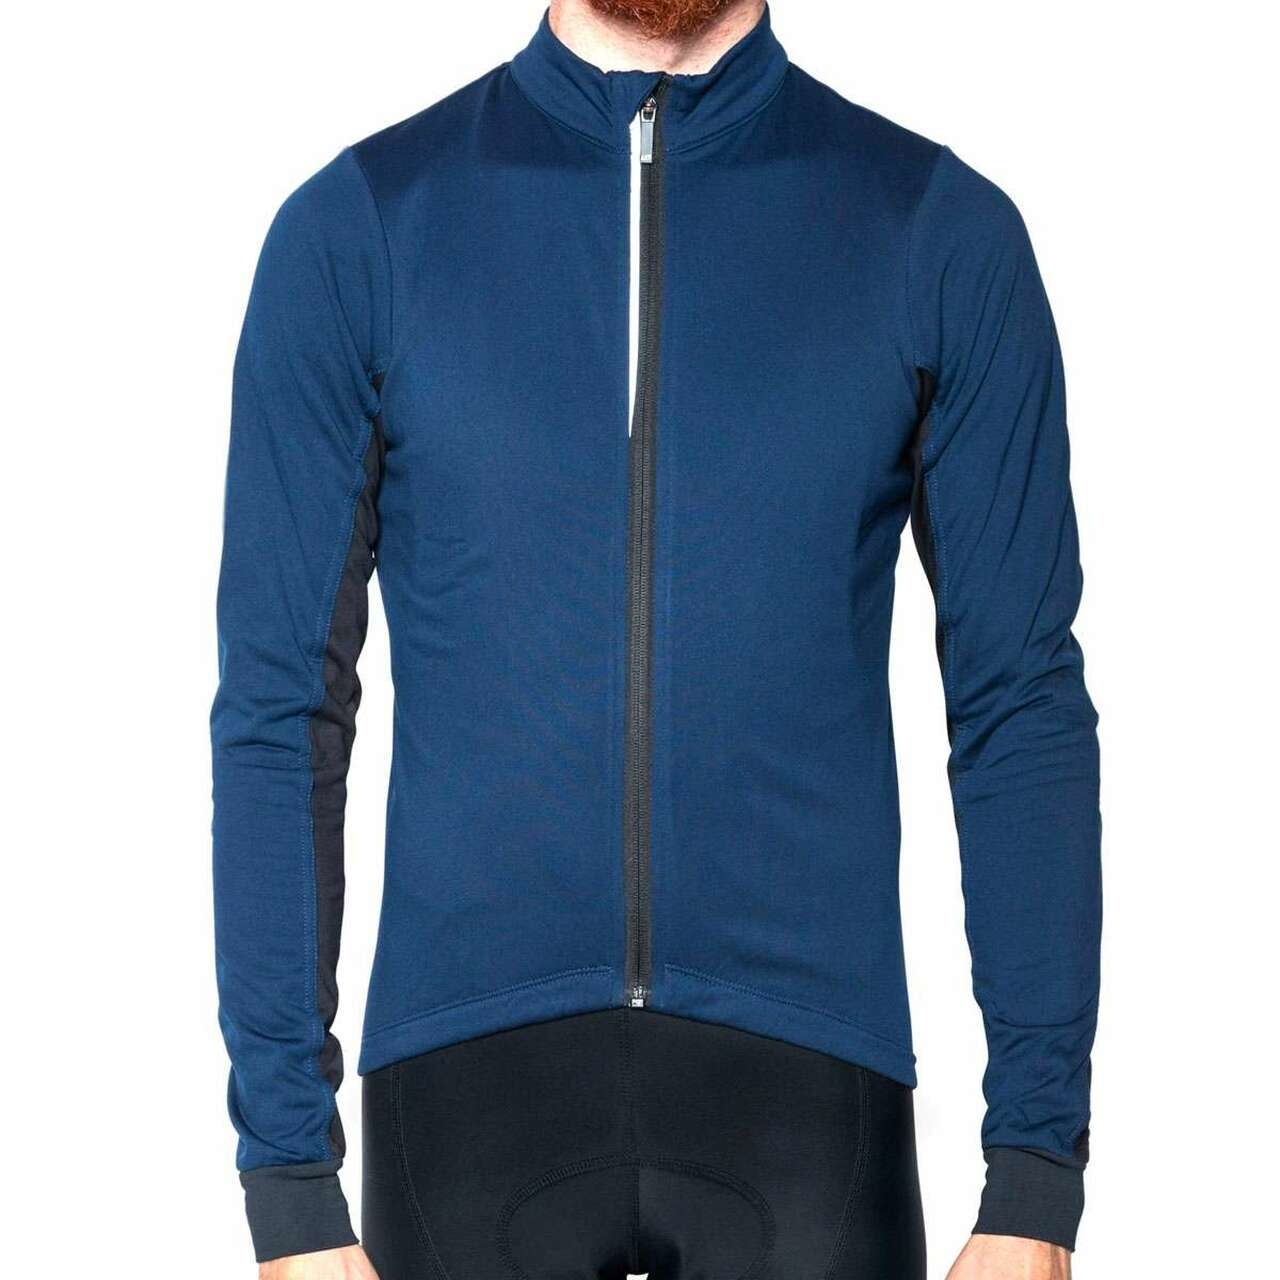 Bellwether Bellwether Thermal Men's Long Sleeve Jersey